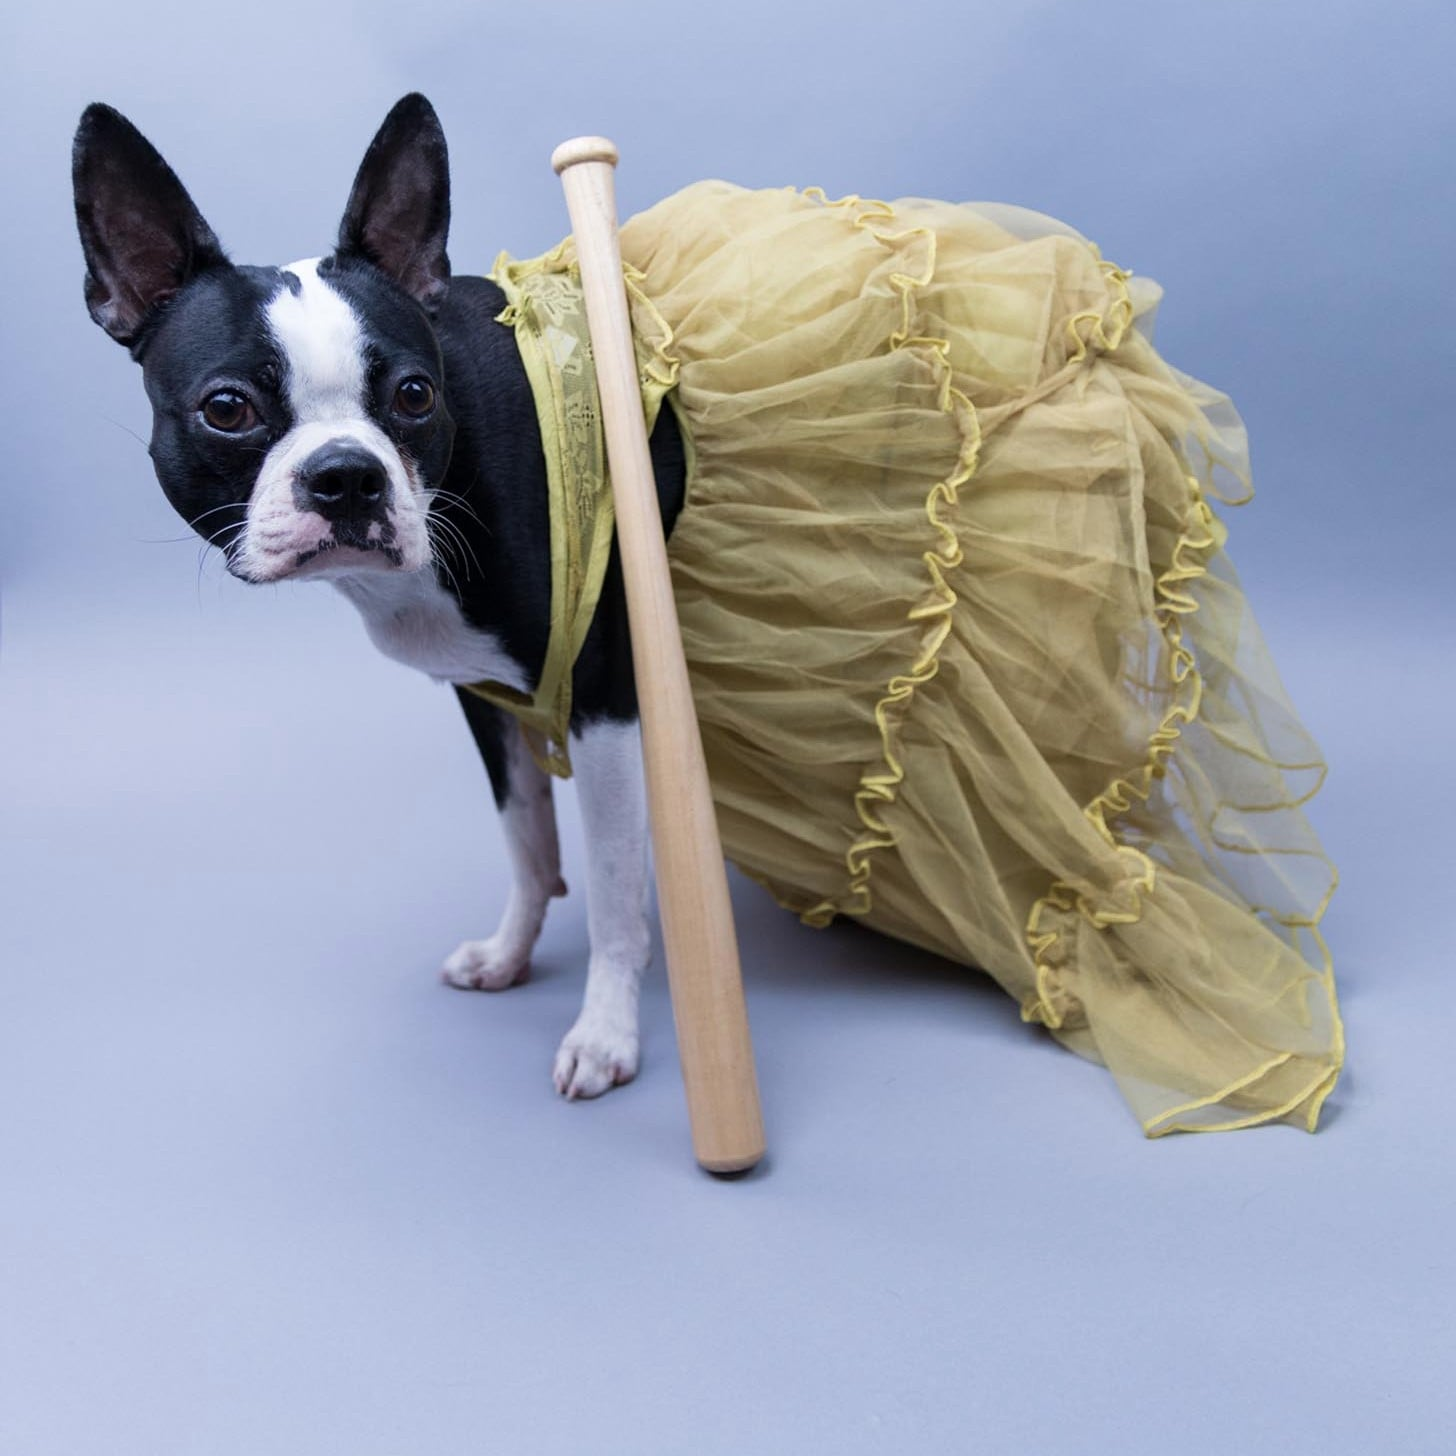 pop-culture-inspired halloween costumes for dogs | popsugar pets